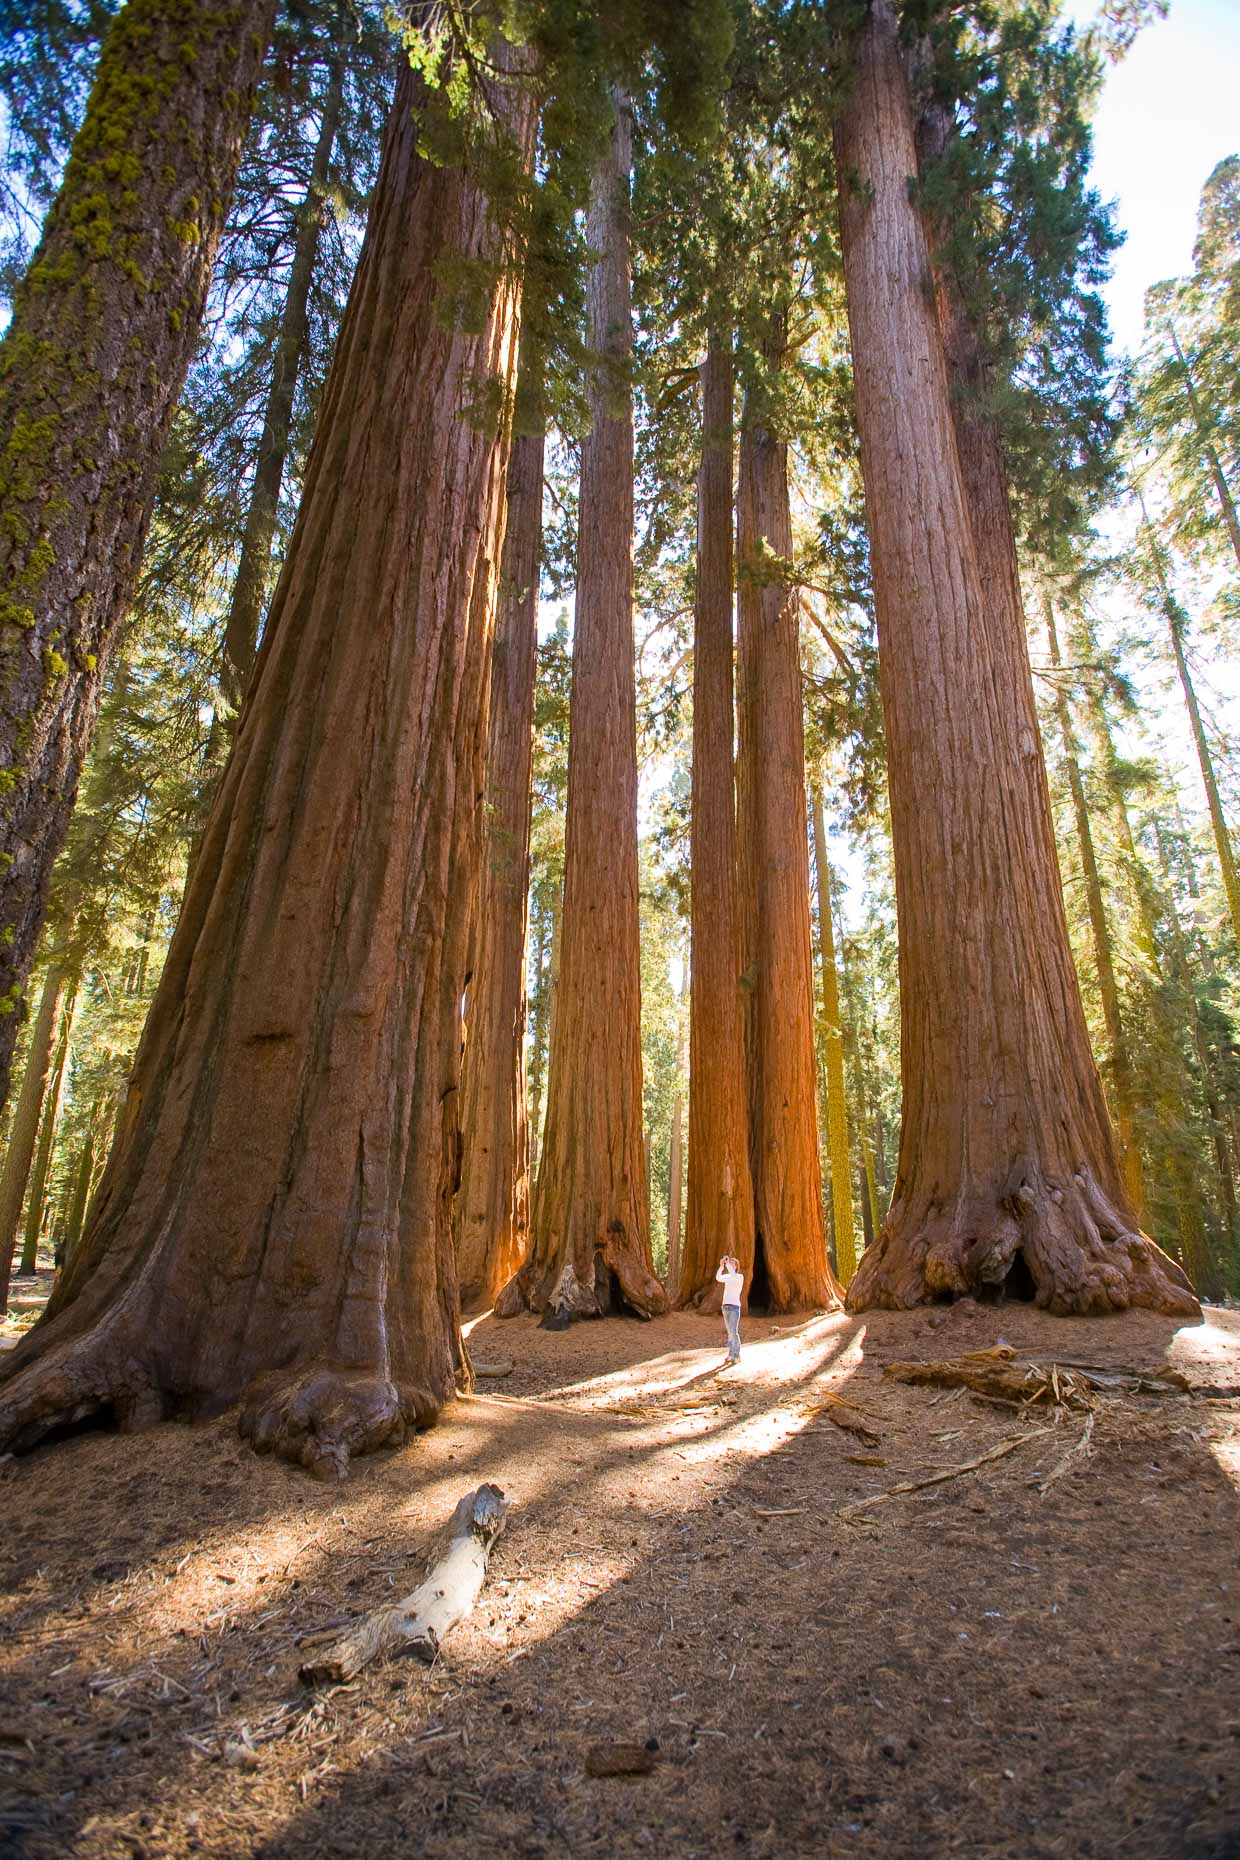 Woman female taking photograph with camera of large Sequoia redwood trees in grove in Sequoia National Park, California, by David Zaitz